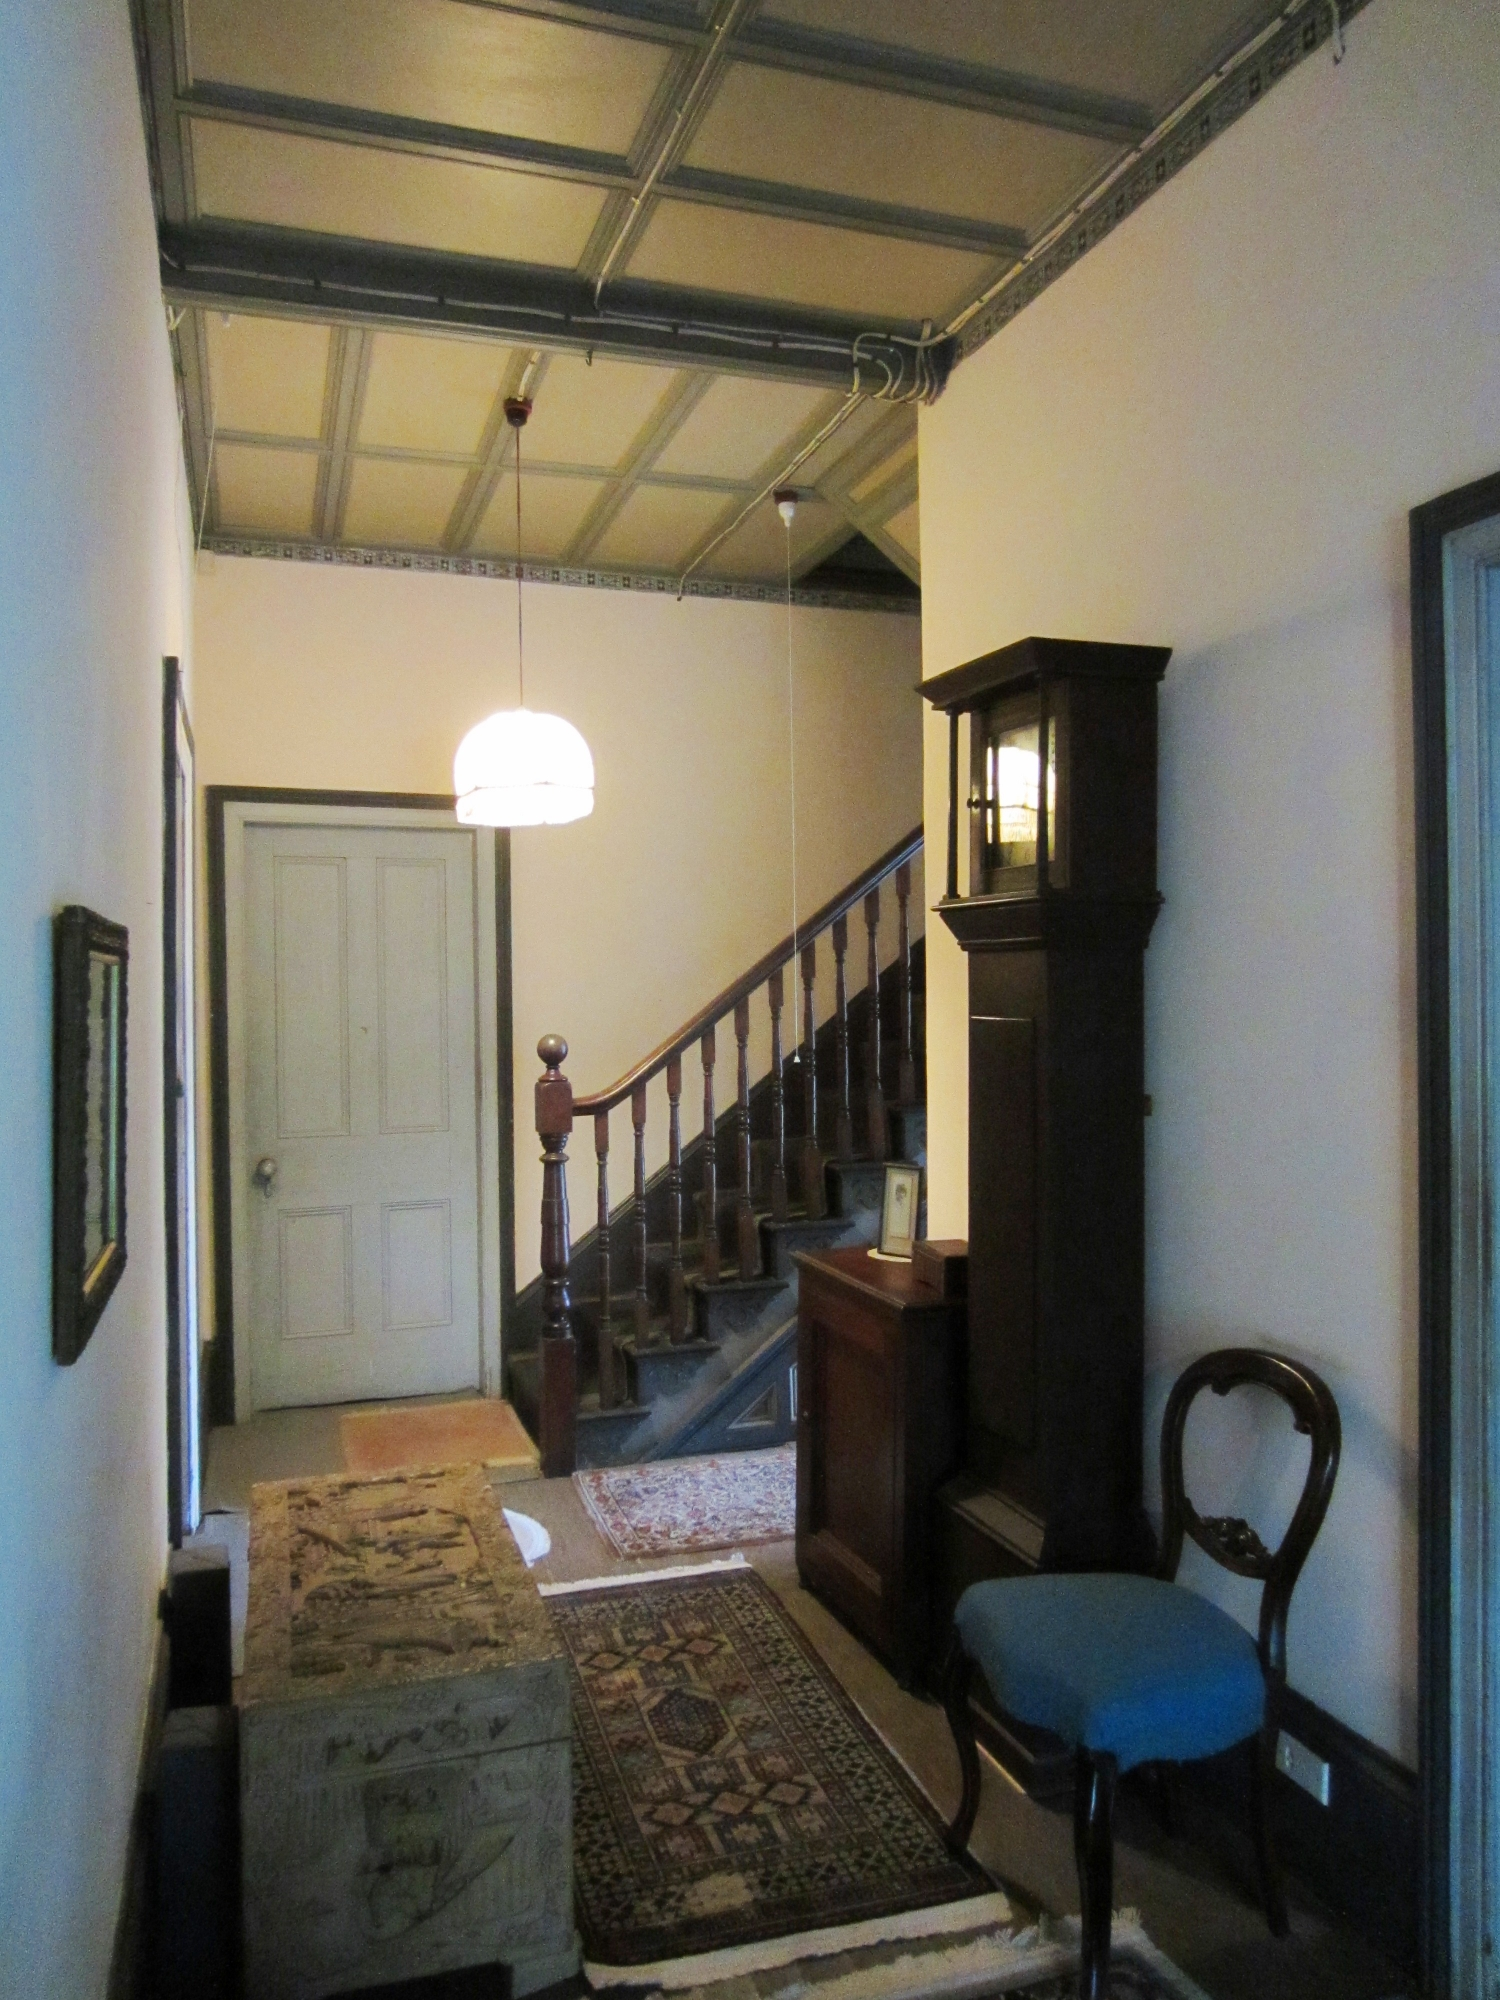 View down hallway towards stairs with clock on righthand side in middle ground.